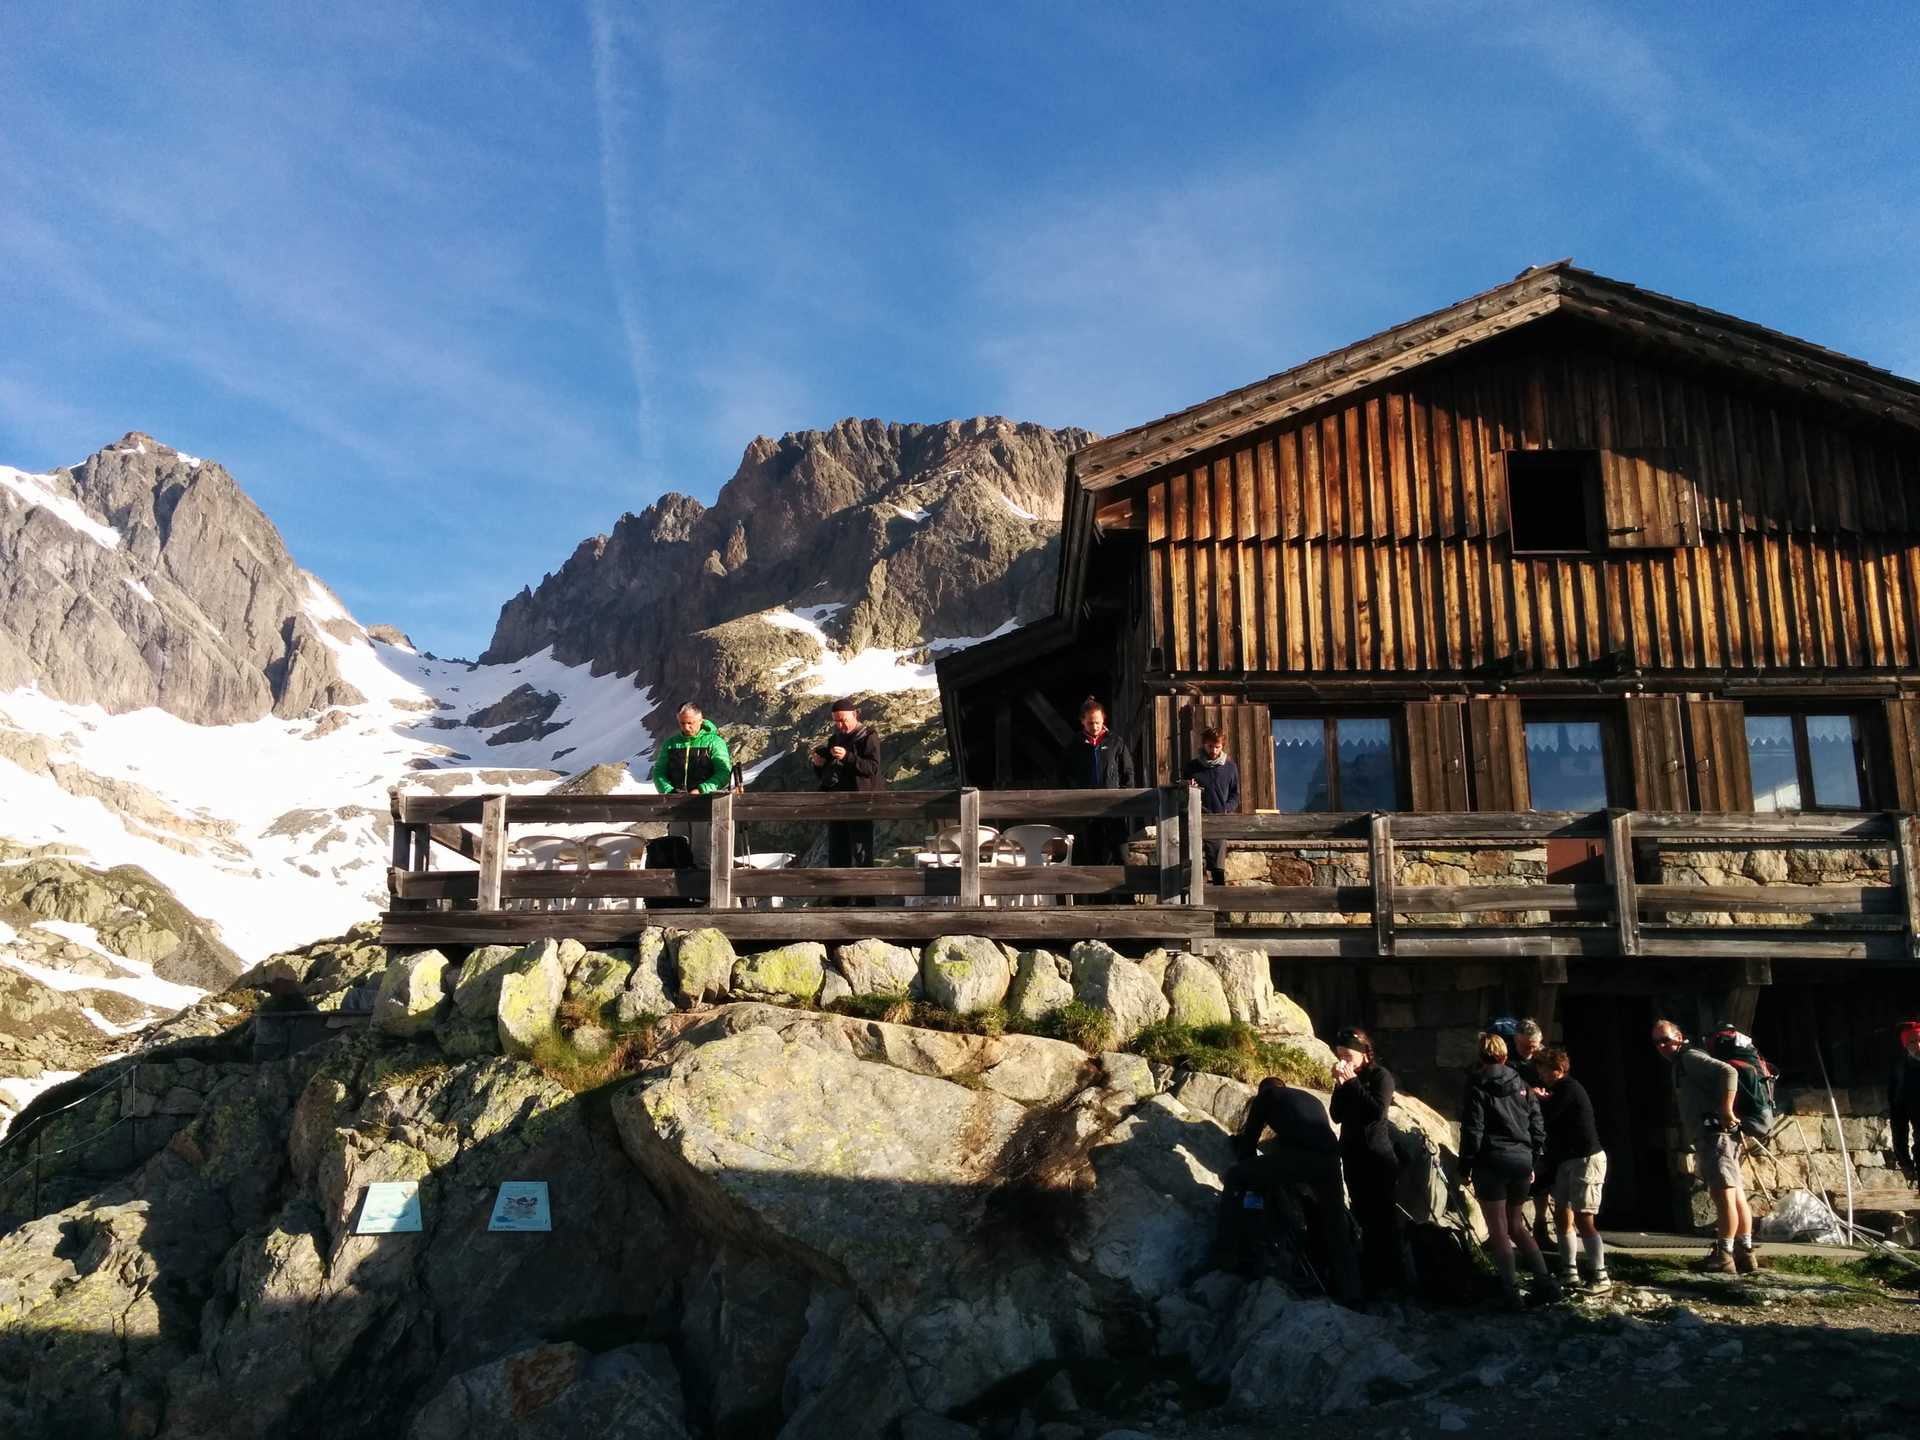 Accommodation during the Tour du Mont Blanc